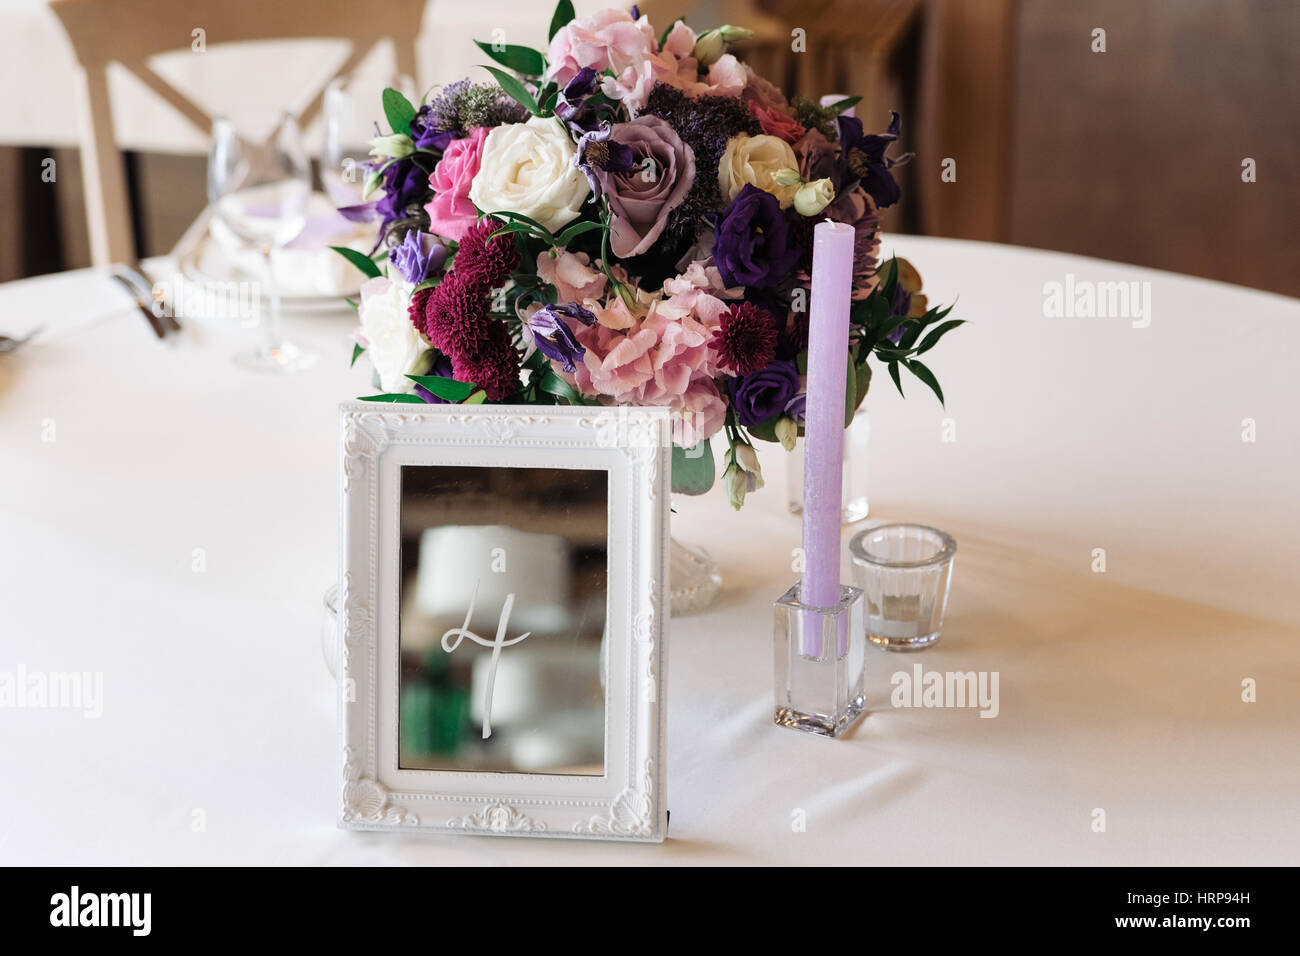 Wedding table with candles, flowers and sign number - Stock Image